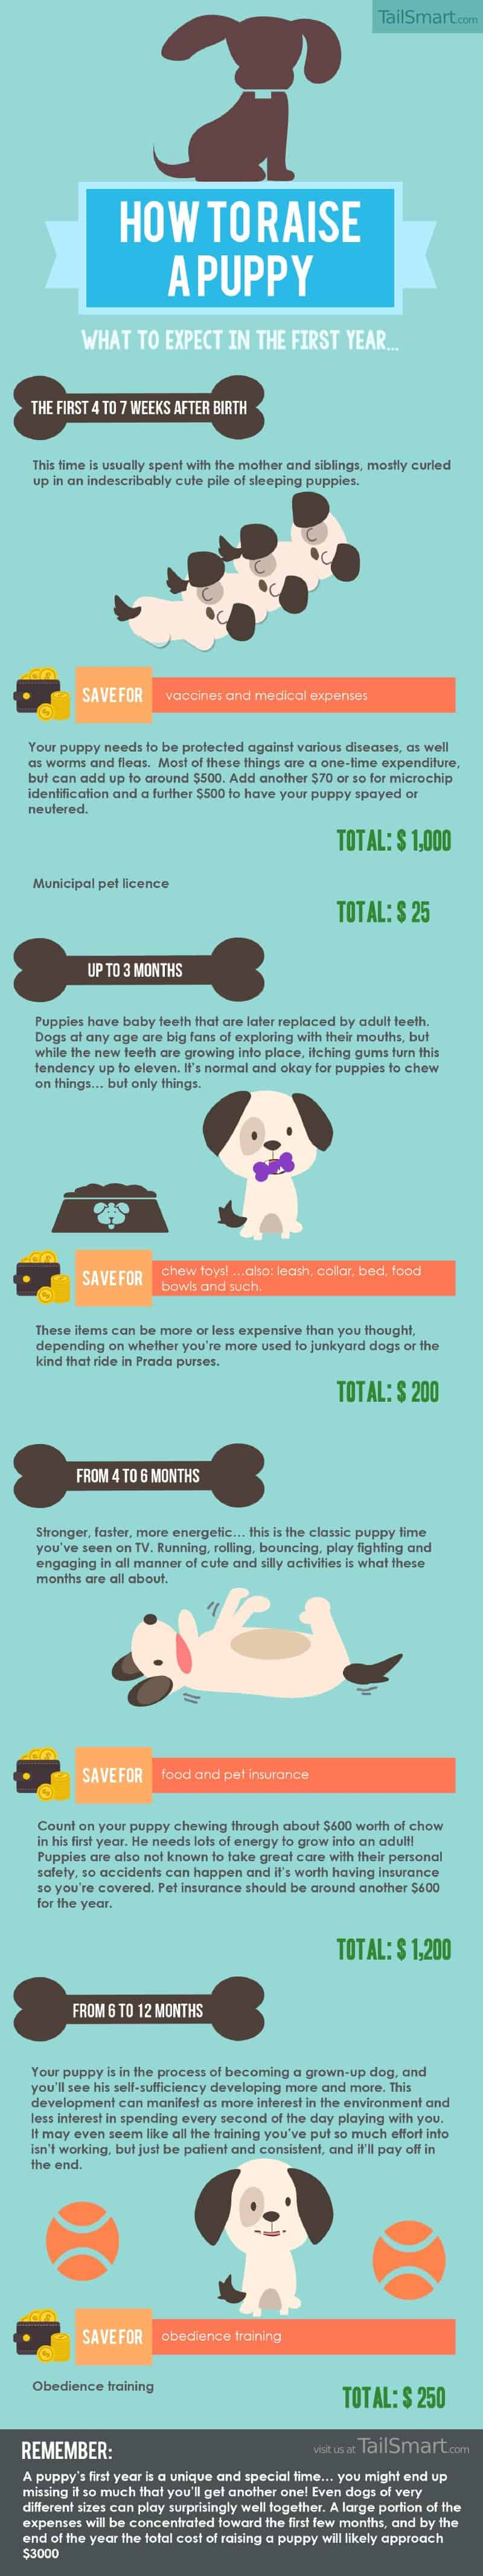 Infographic describing what a new puppy owner can expect in the first year.